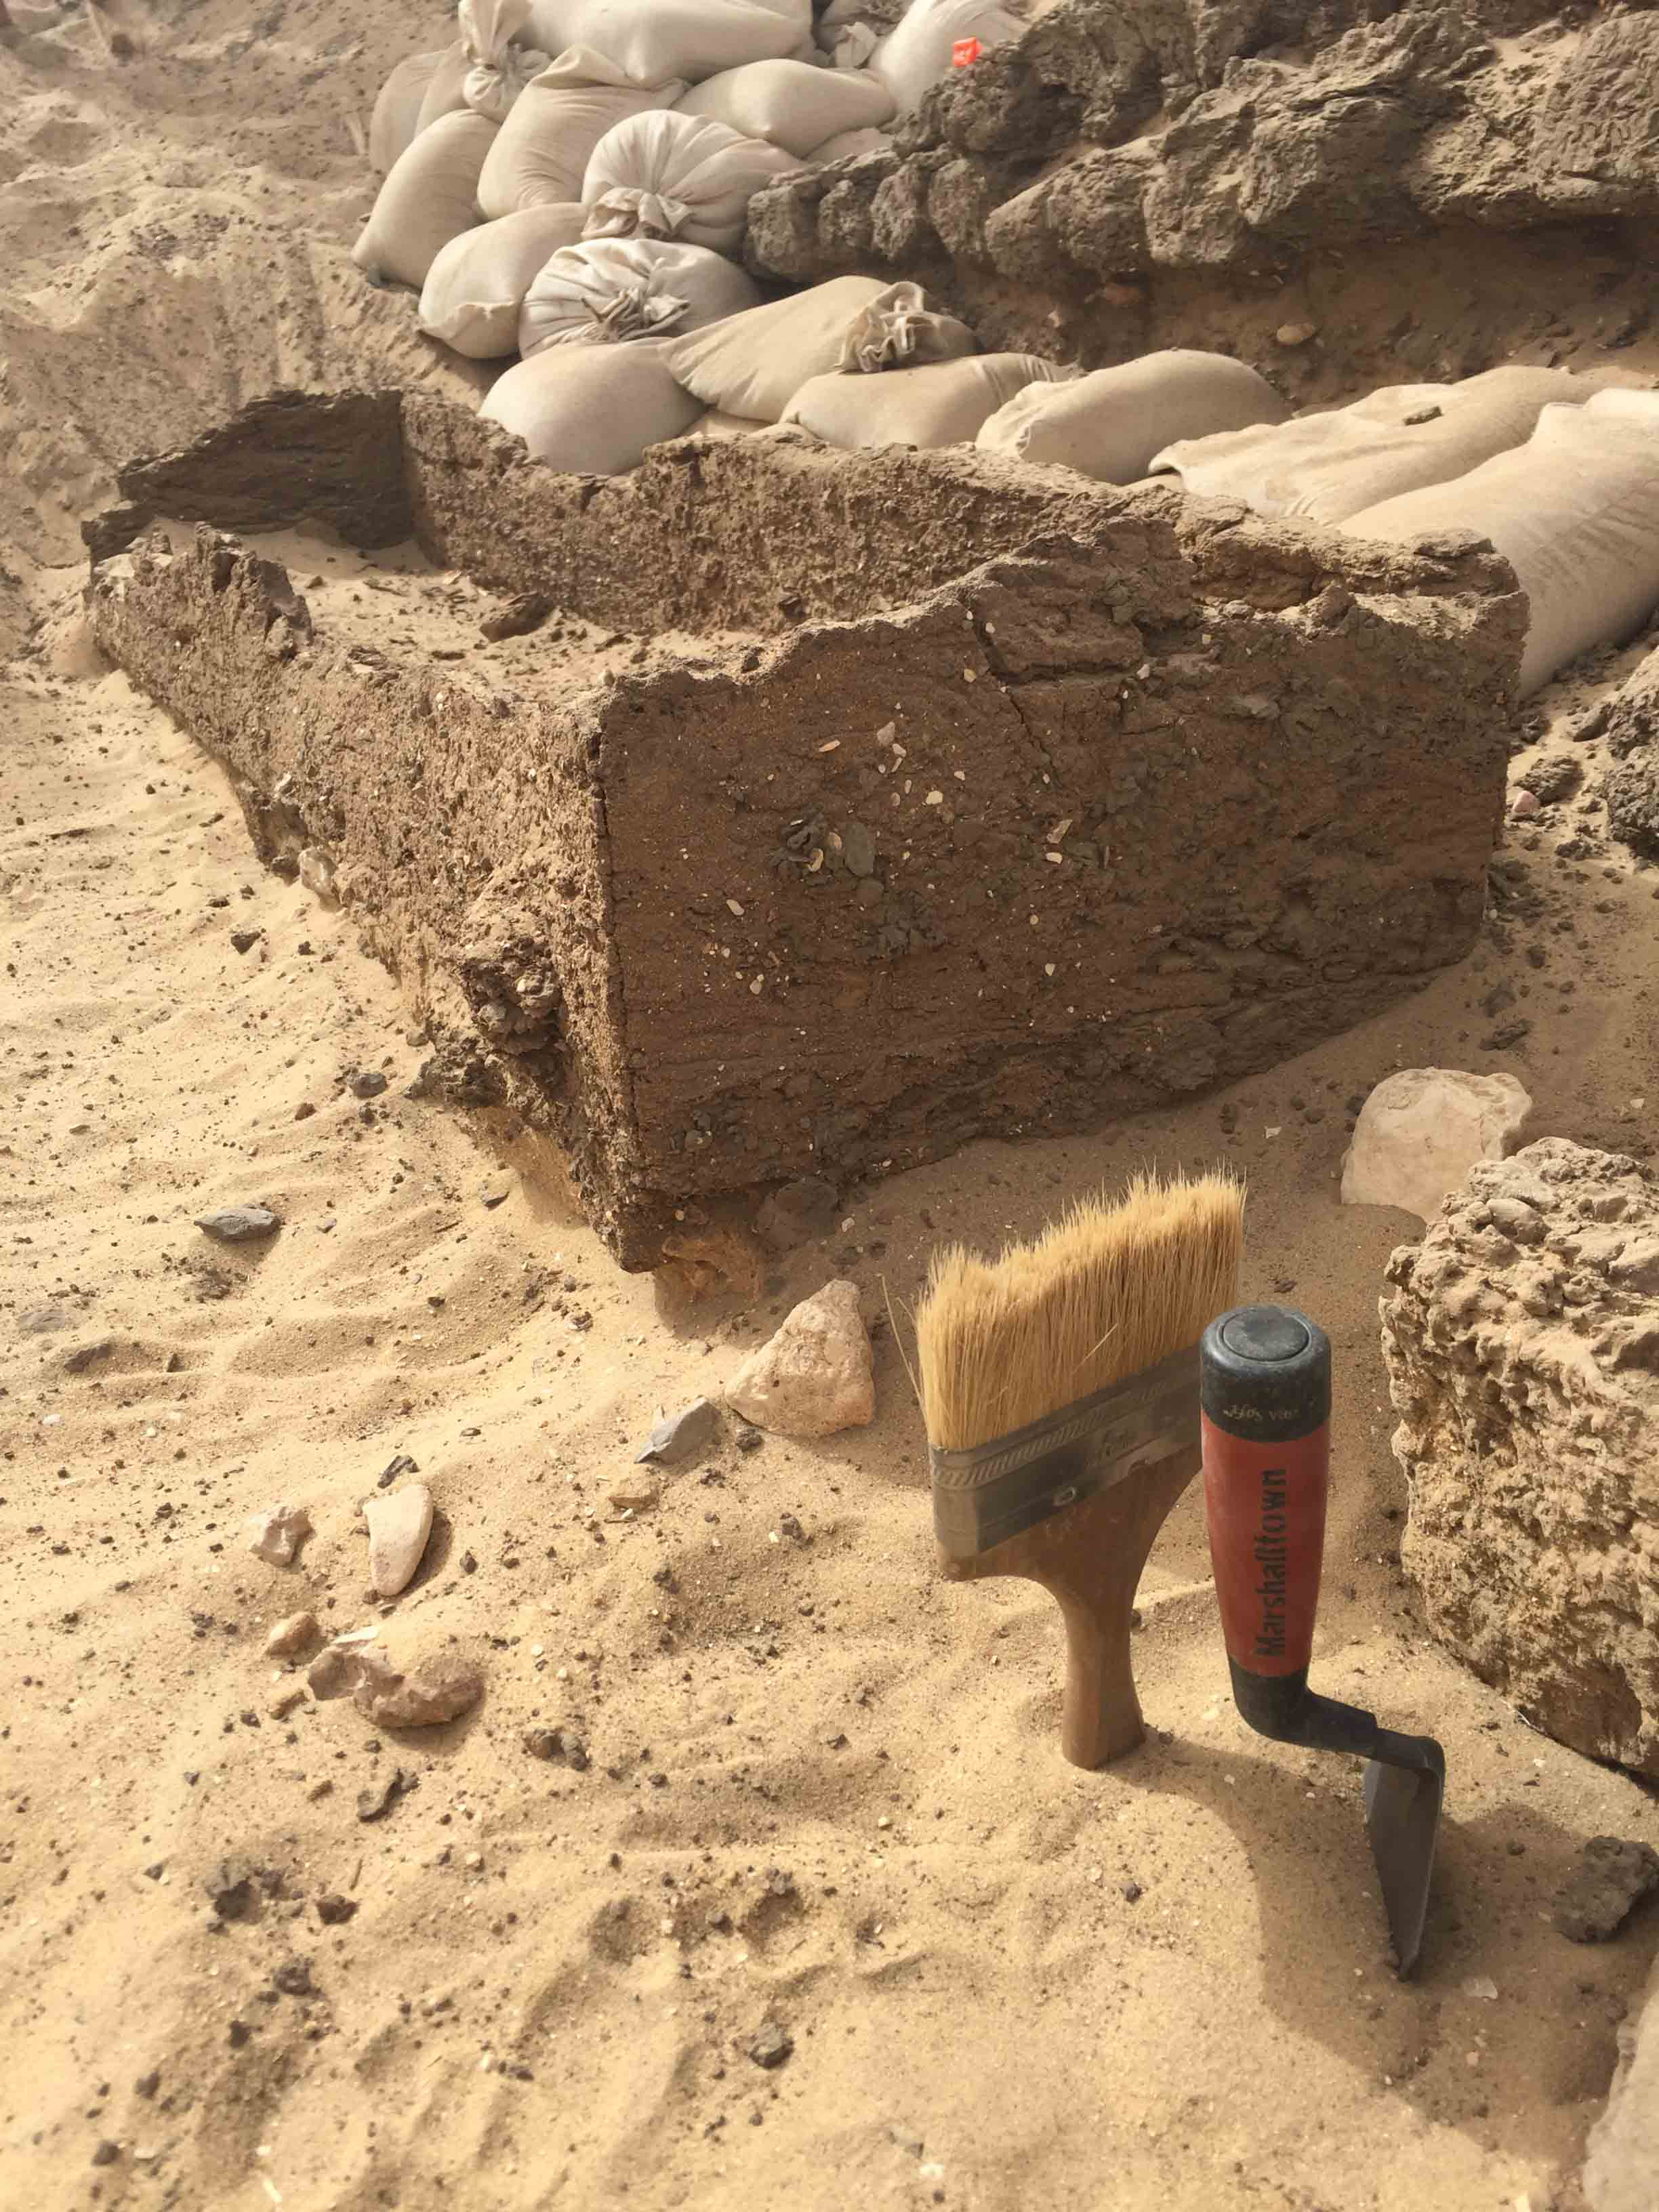 Fig. 3. Trowel & brush standing by for detail work at the Shunet el-Zebib. Photo: Wendy Doyon / North Abydos Expedition © 2019